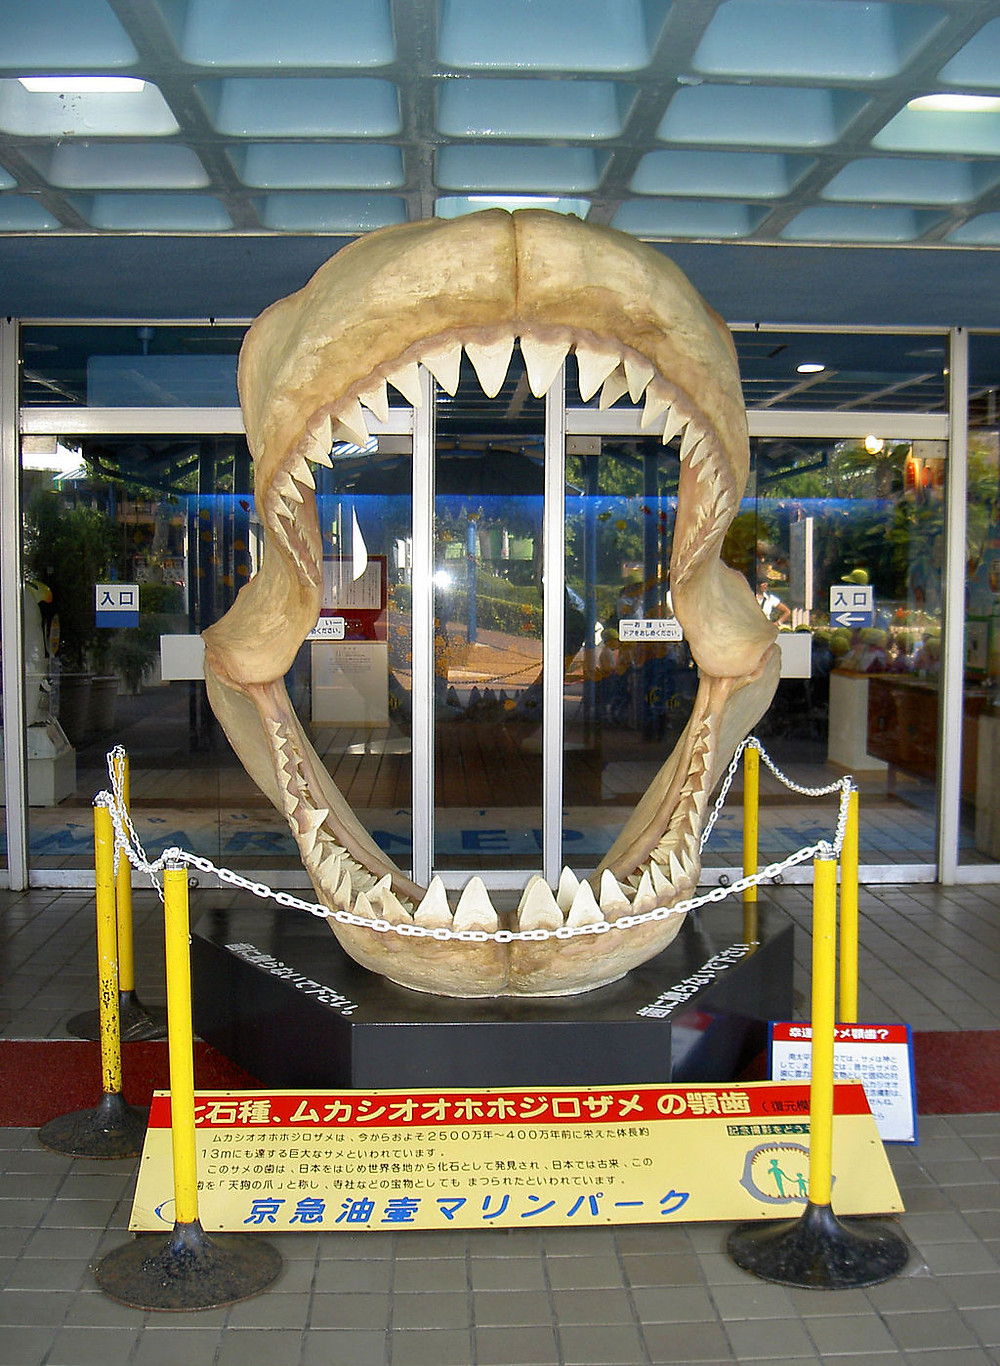 FILE PHOTO: Megalodon fossils are mostly found in Japan in Asia.  Image: Public Domain